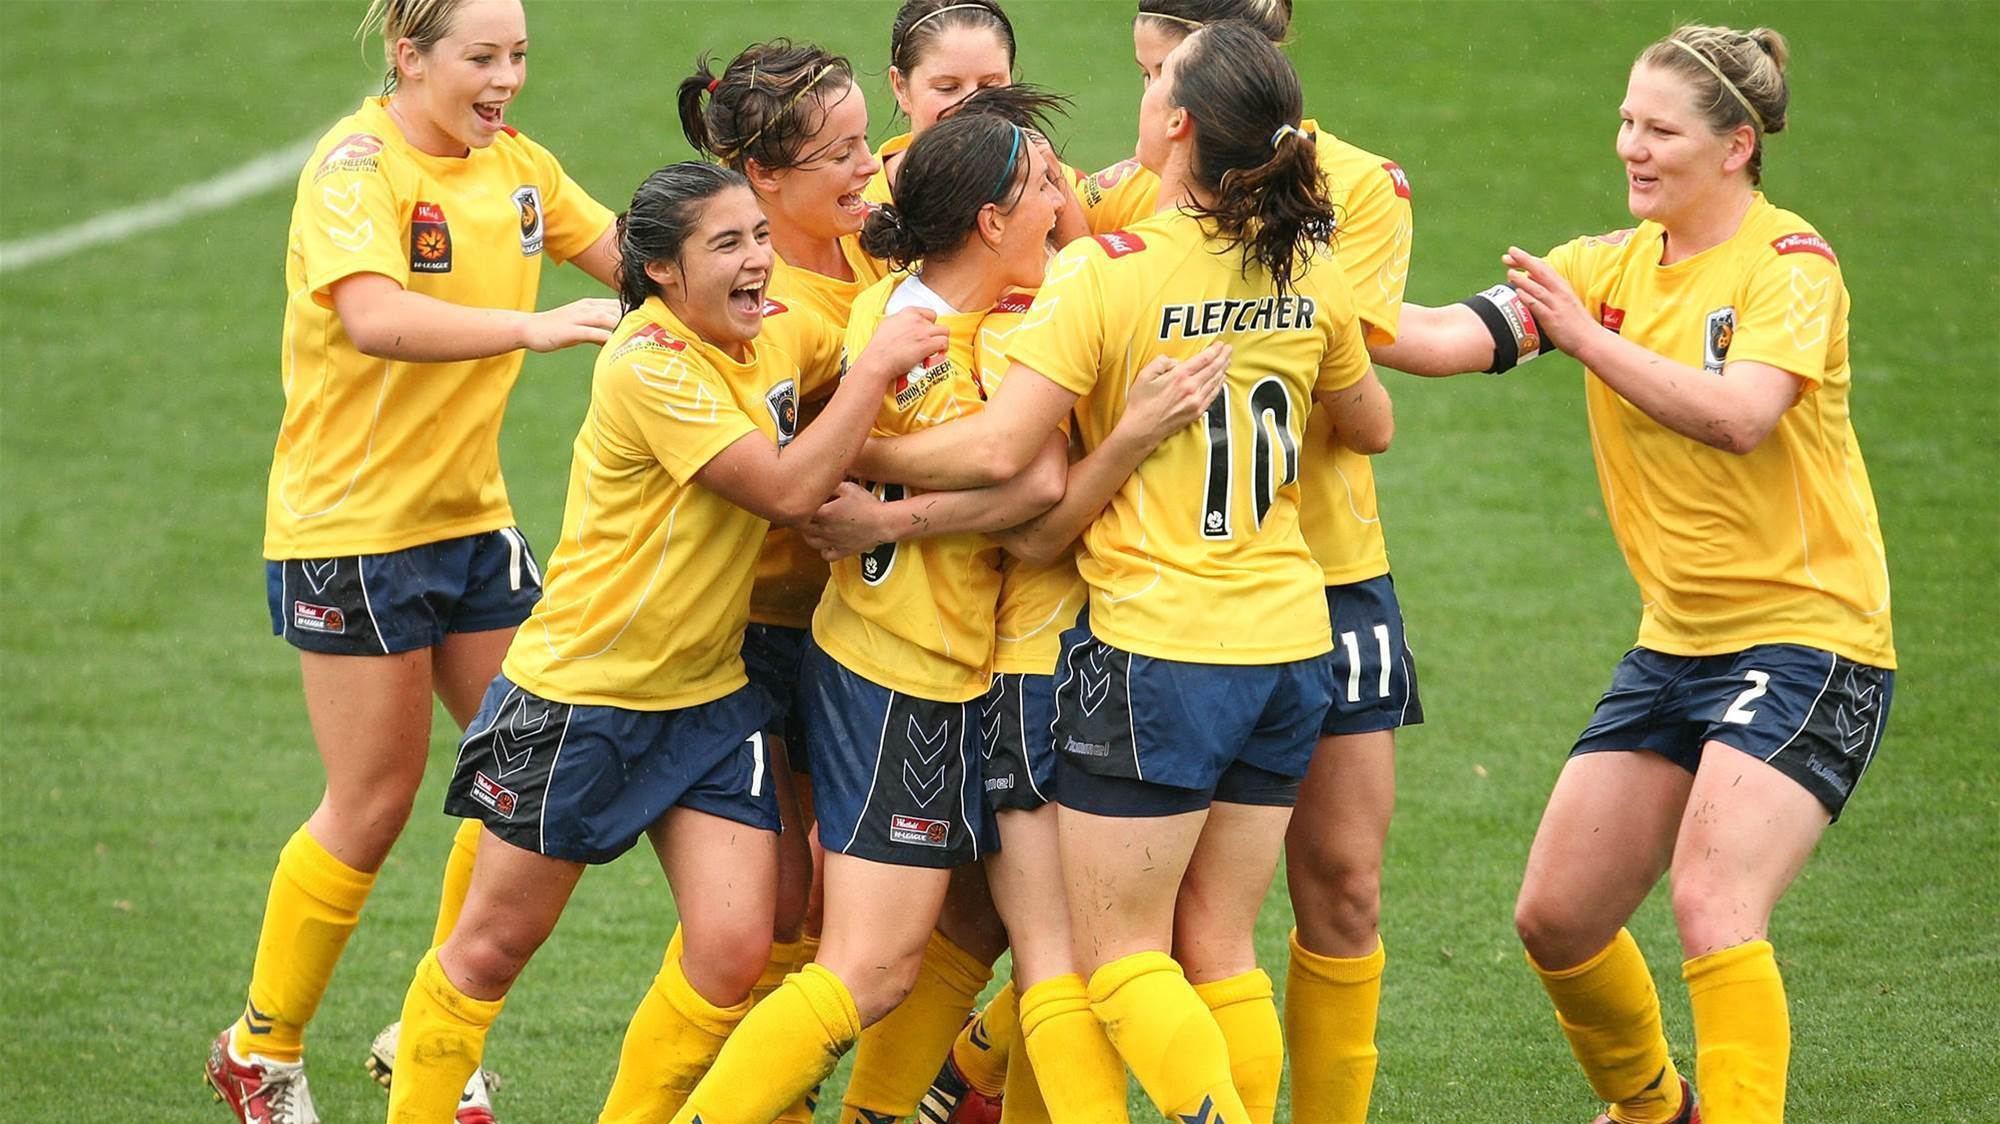 Are Mariners entering the W-League next season?